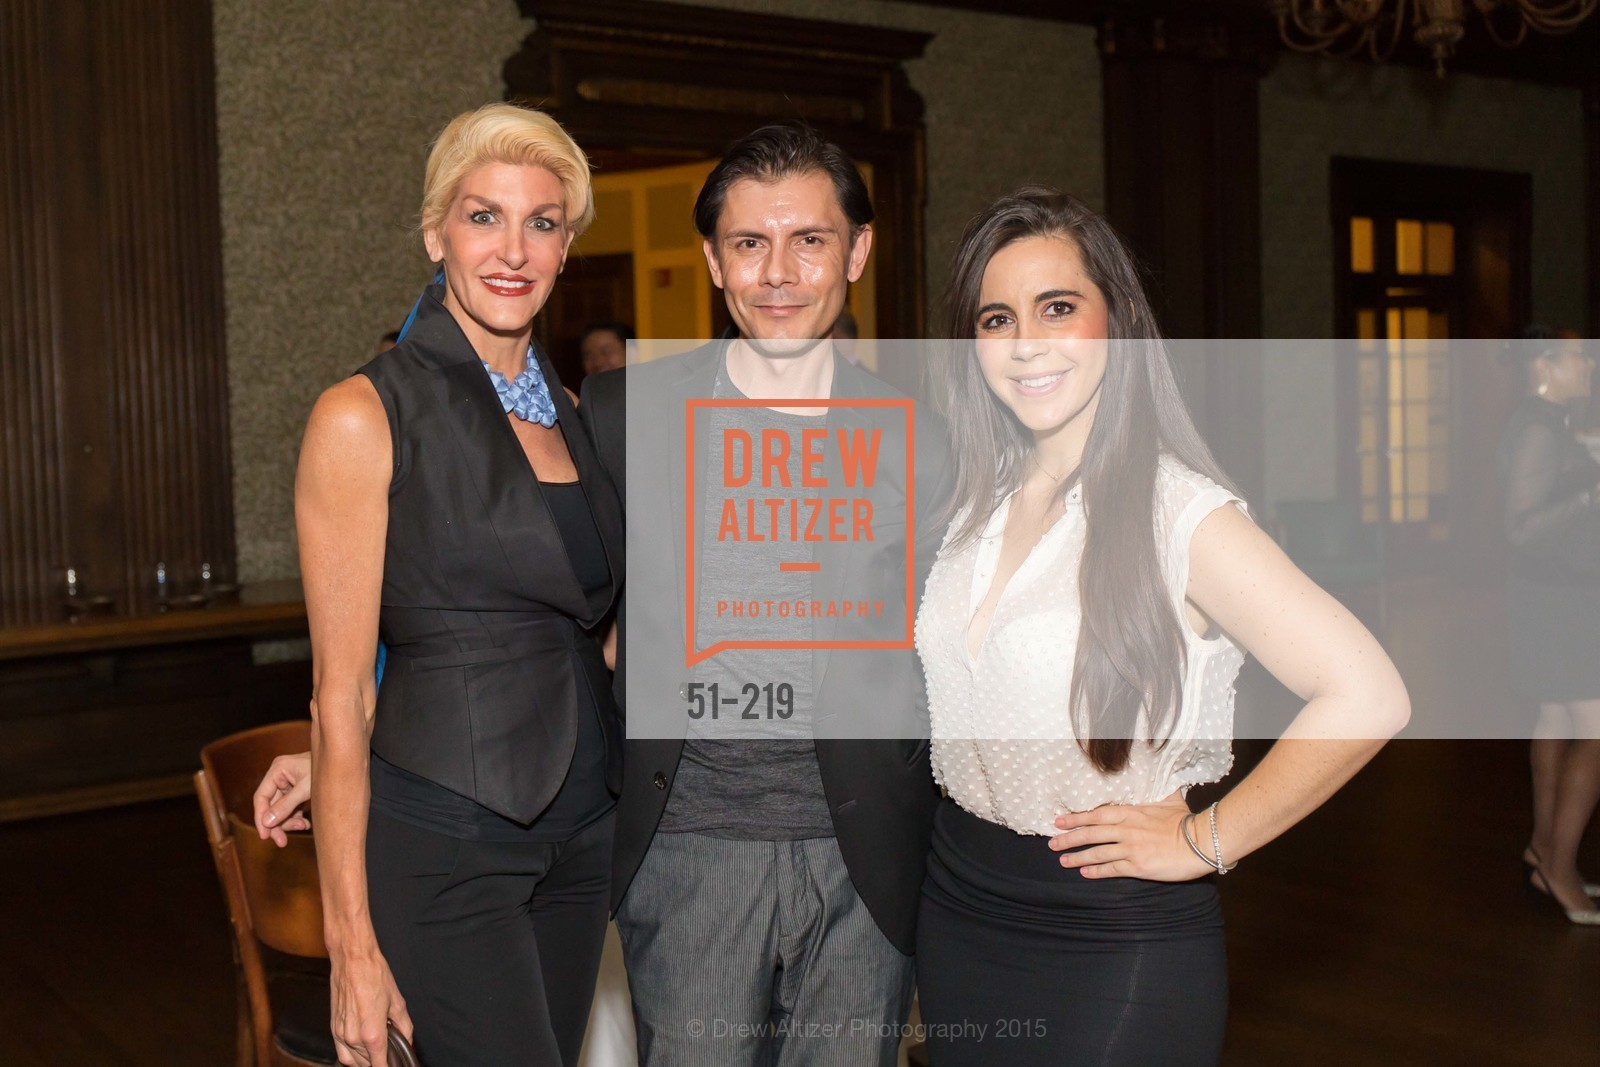 Karen Caldwell, Damion Matthews, Samantha DeBianchi, Champagne Reception & Screening of Million Dollar Listing San Francisco, University Club. 800 Powell St, August 5th, 2015,Drew Altizer, Drew Altizer Photography, full-service agency, private events, San Francisco photographer, photographer california